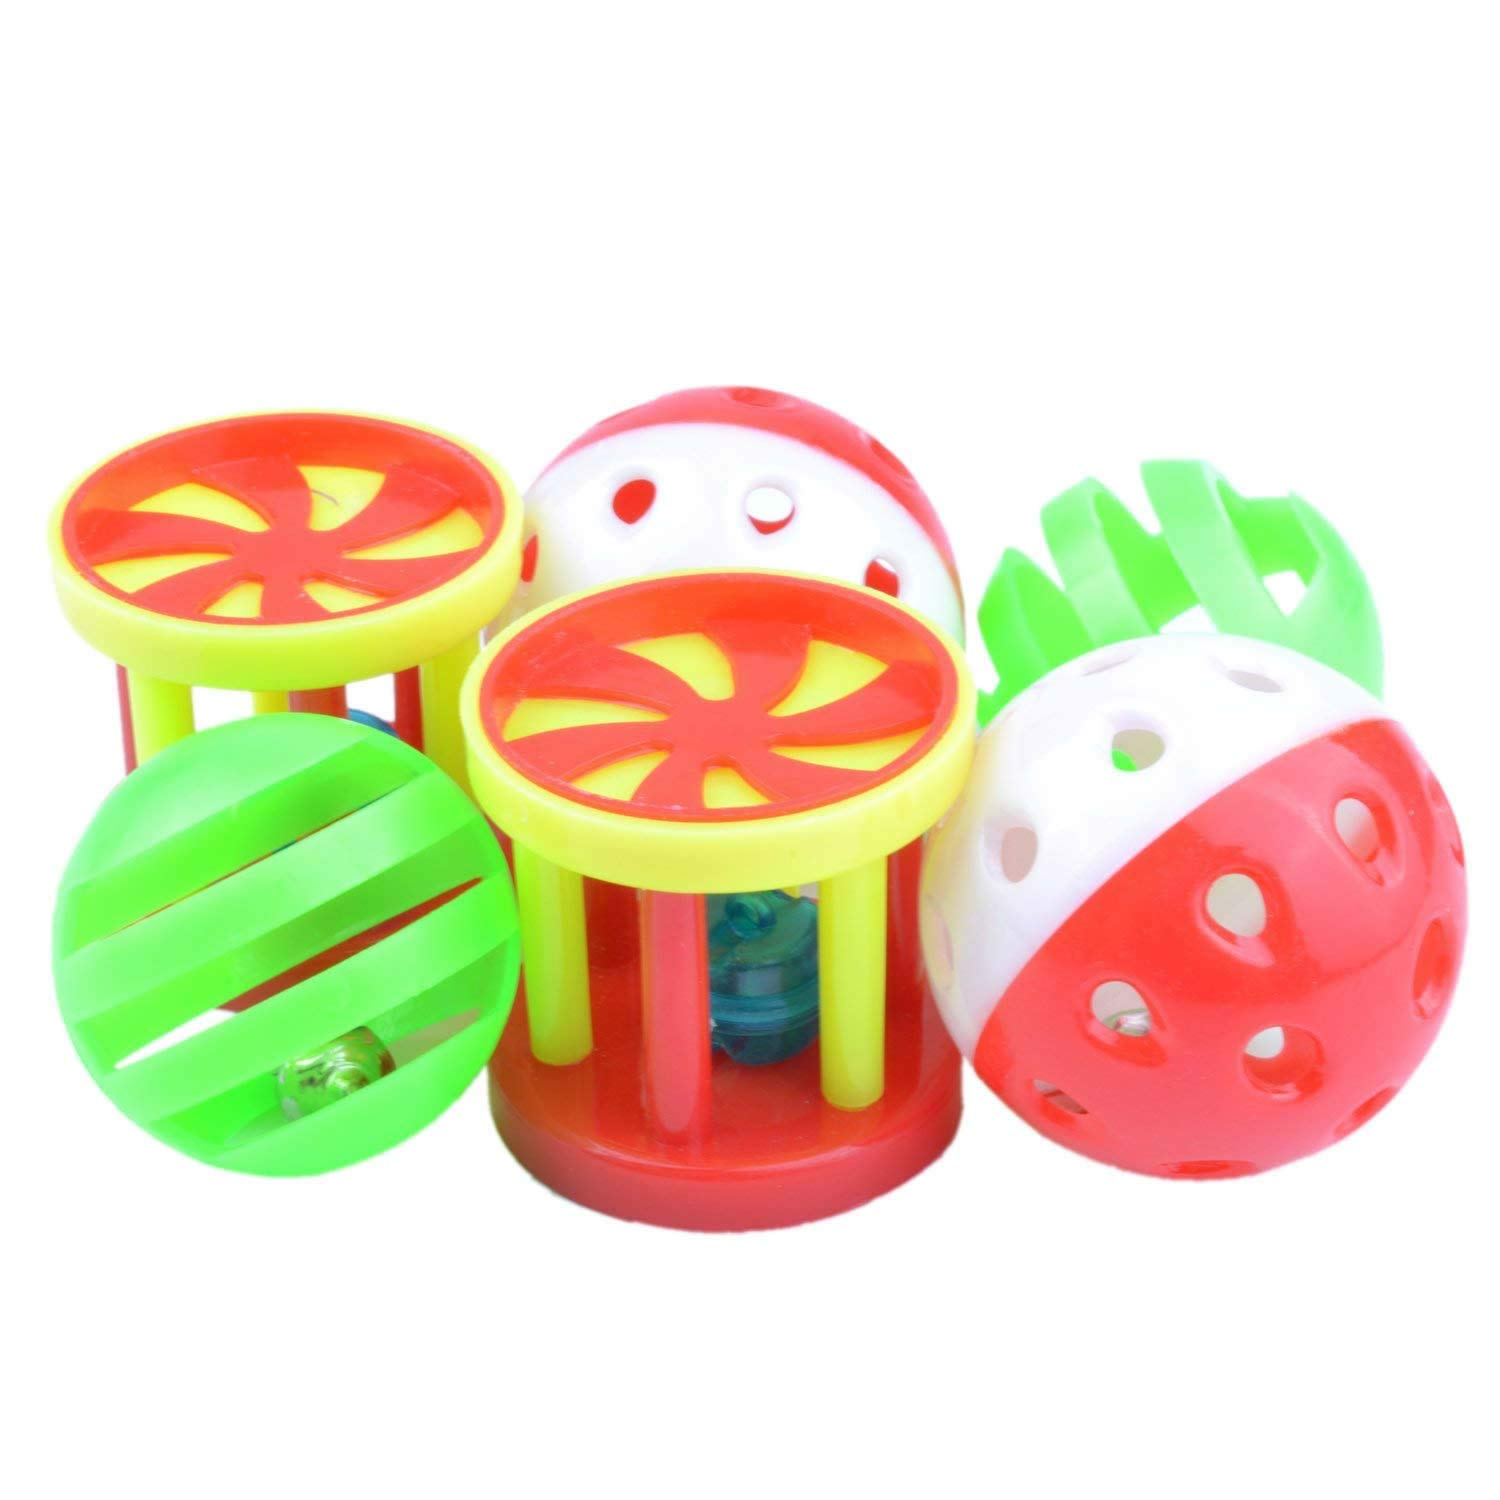 6 Pack Parrot Food Toys Chewing Playing Training Bell Ball Bird Cage Treat Toy for Cockatiel Parakeet Cat Conure